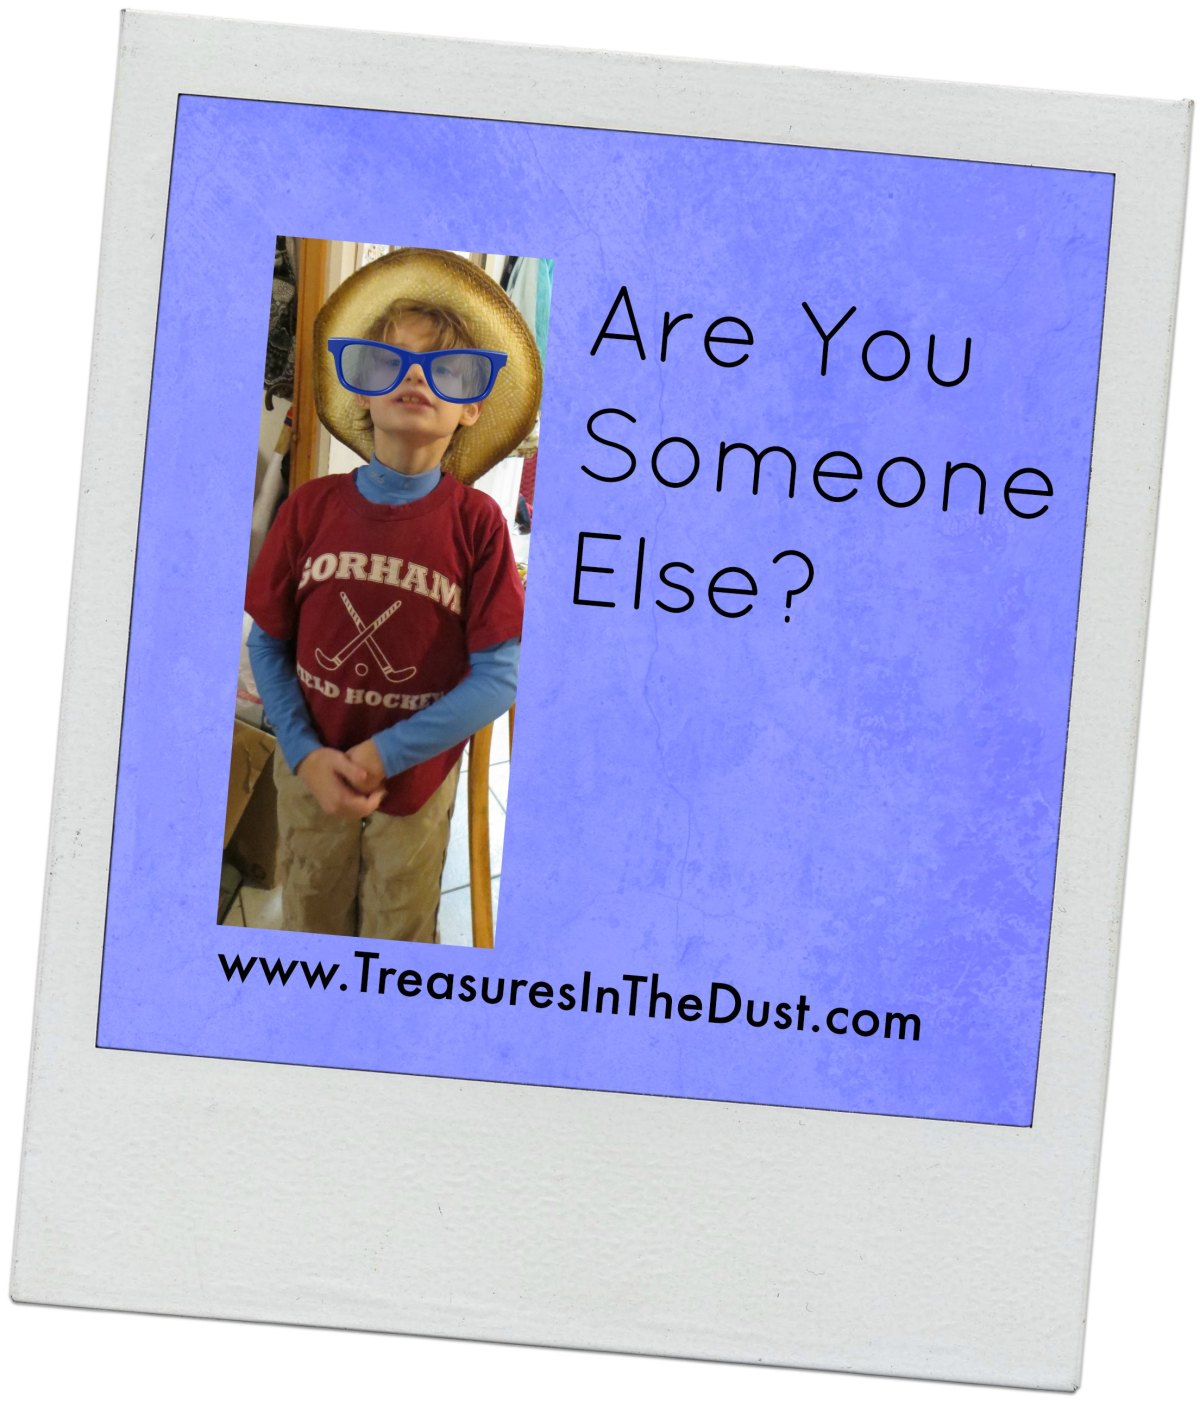 Are You Someone Else?